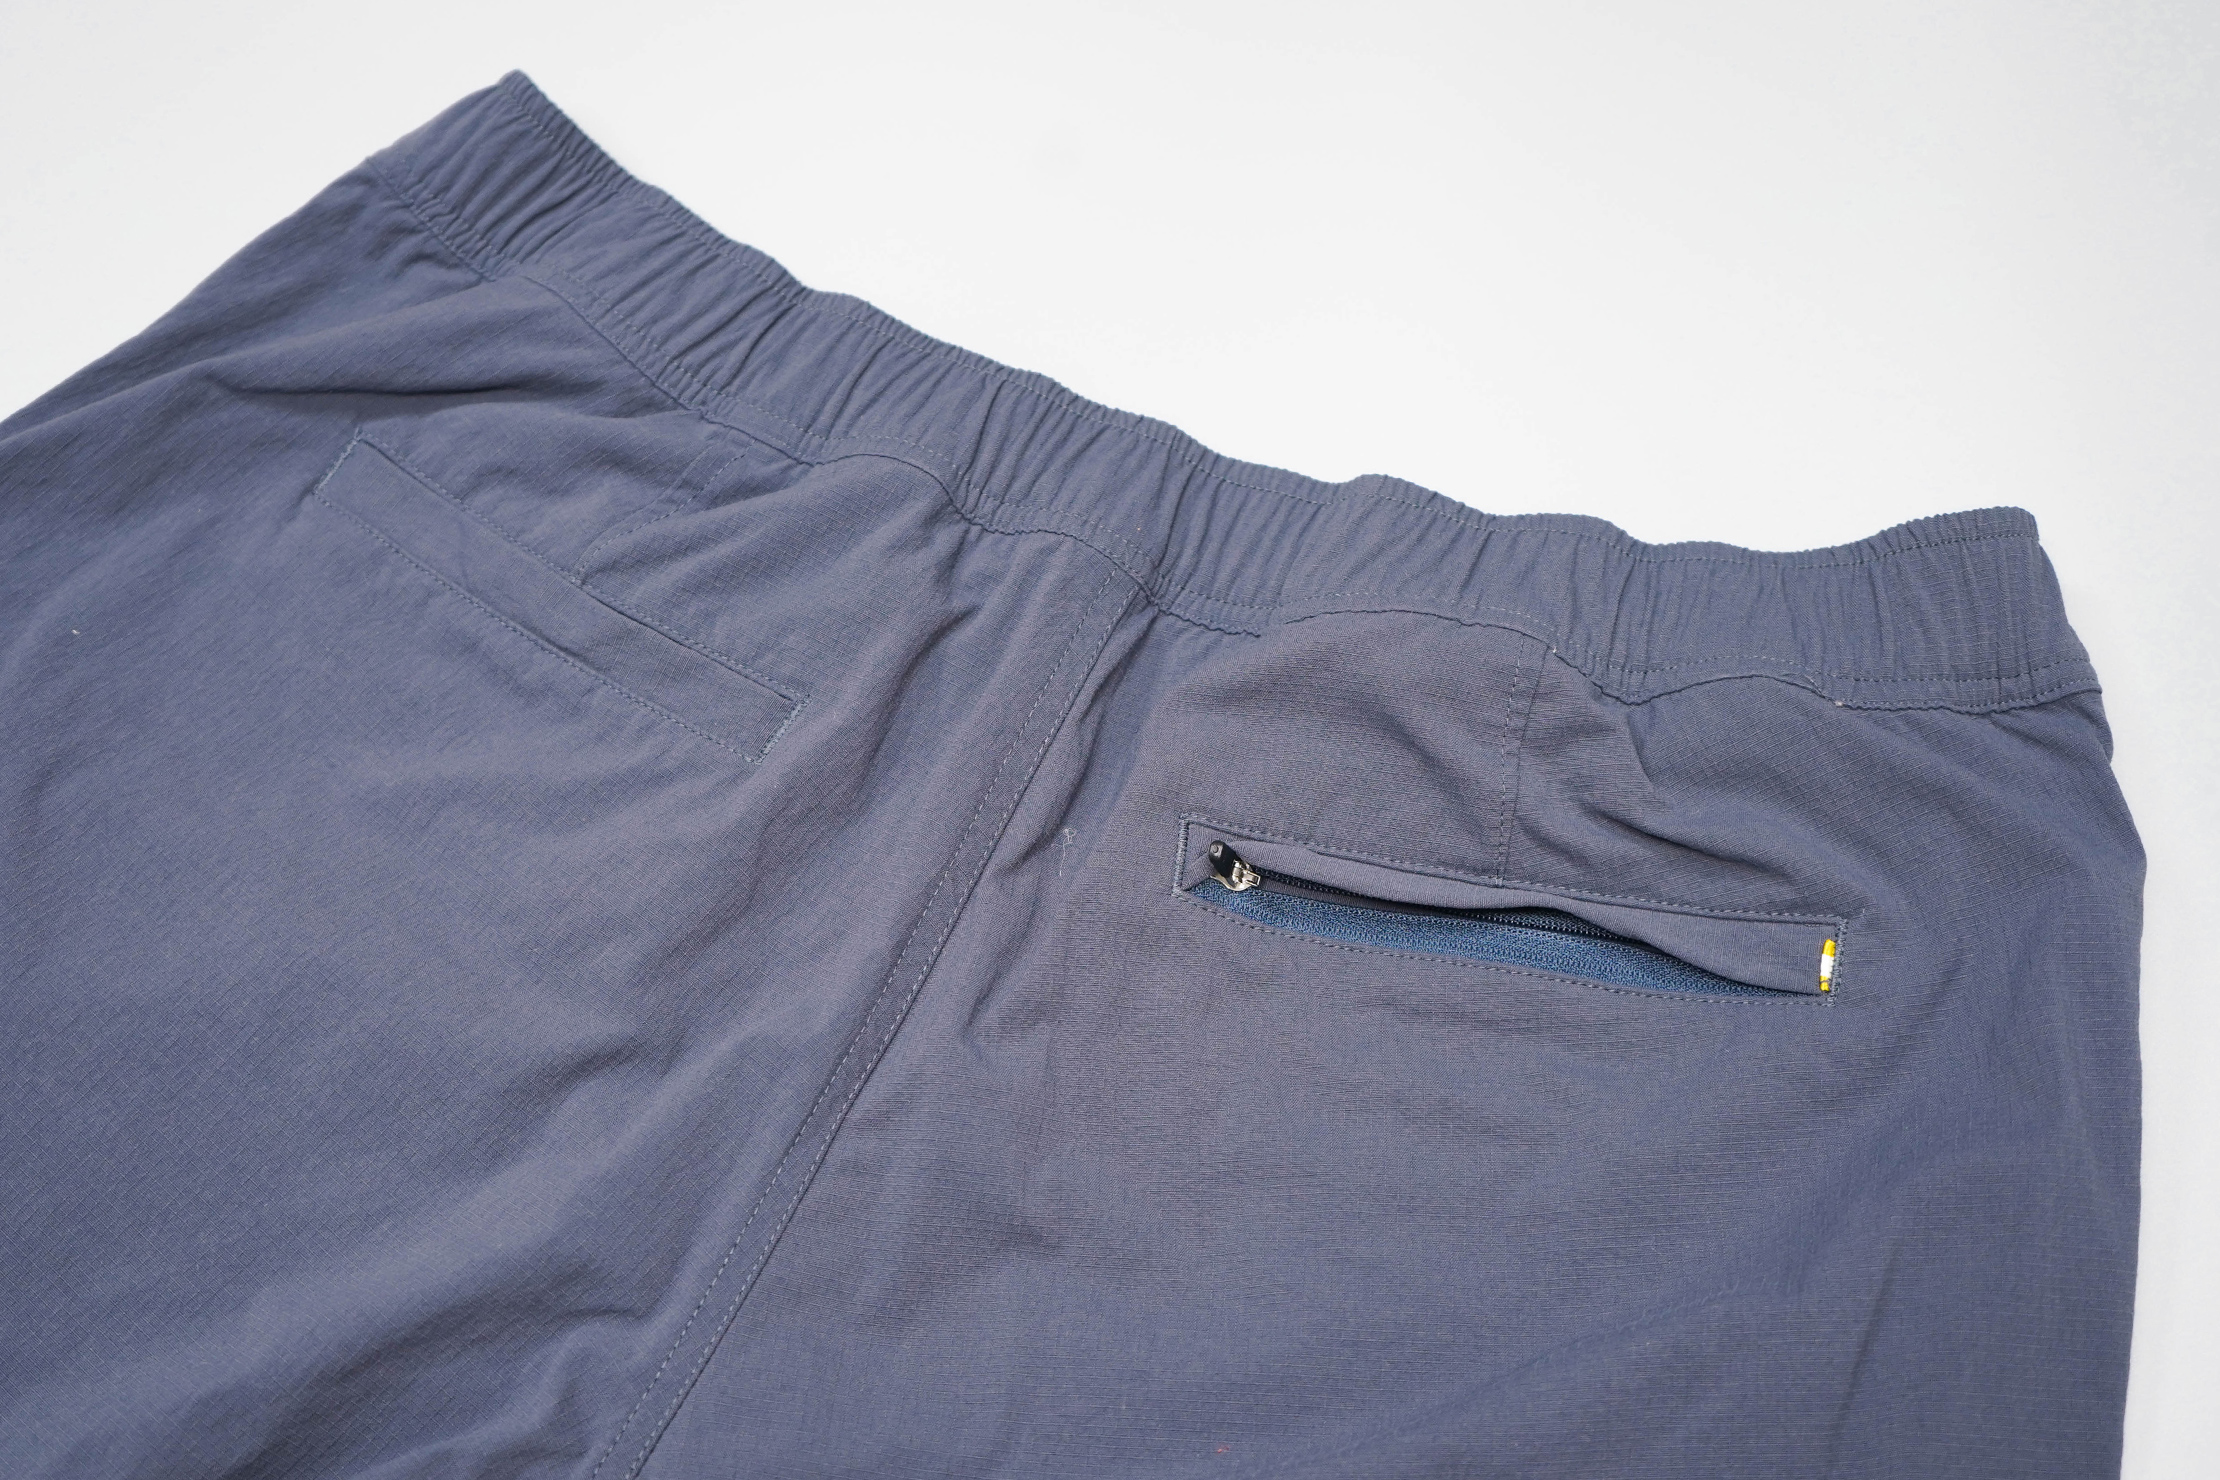 Olivers Compass Pant Back Pockets